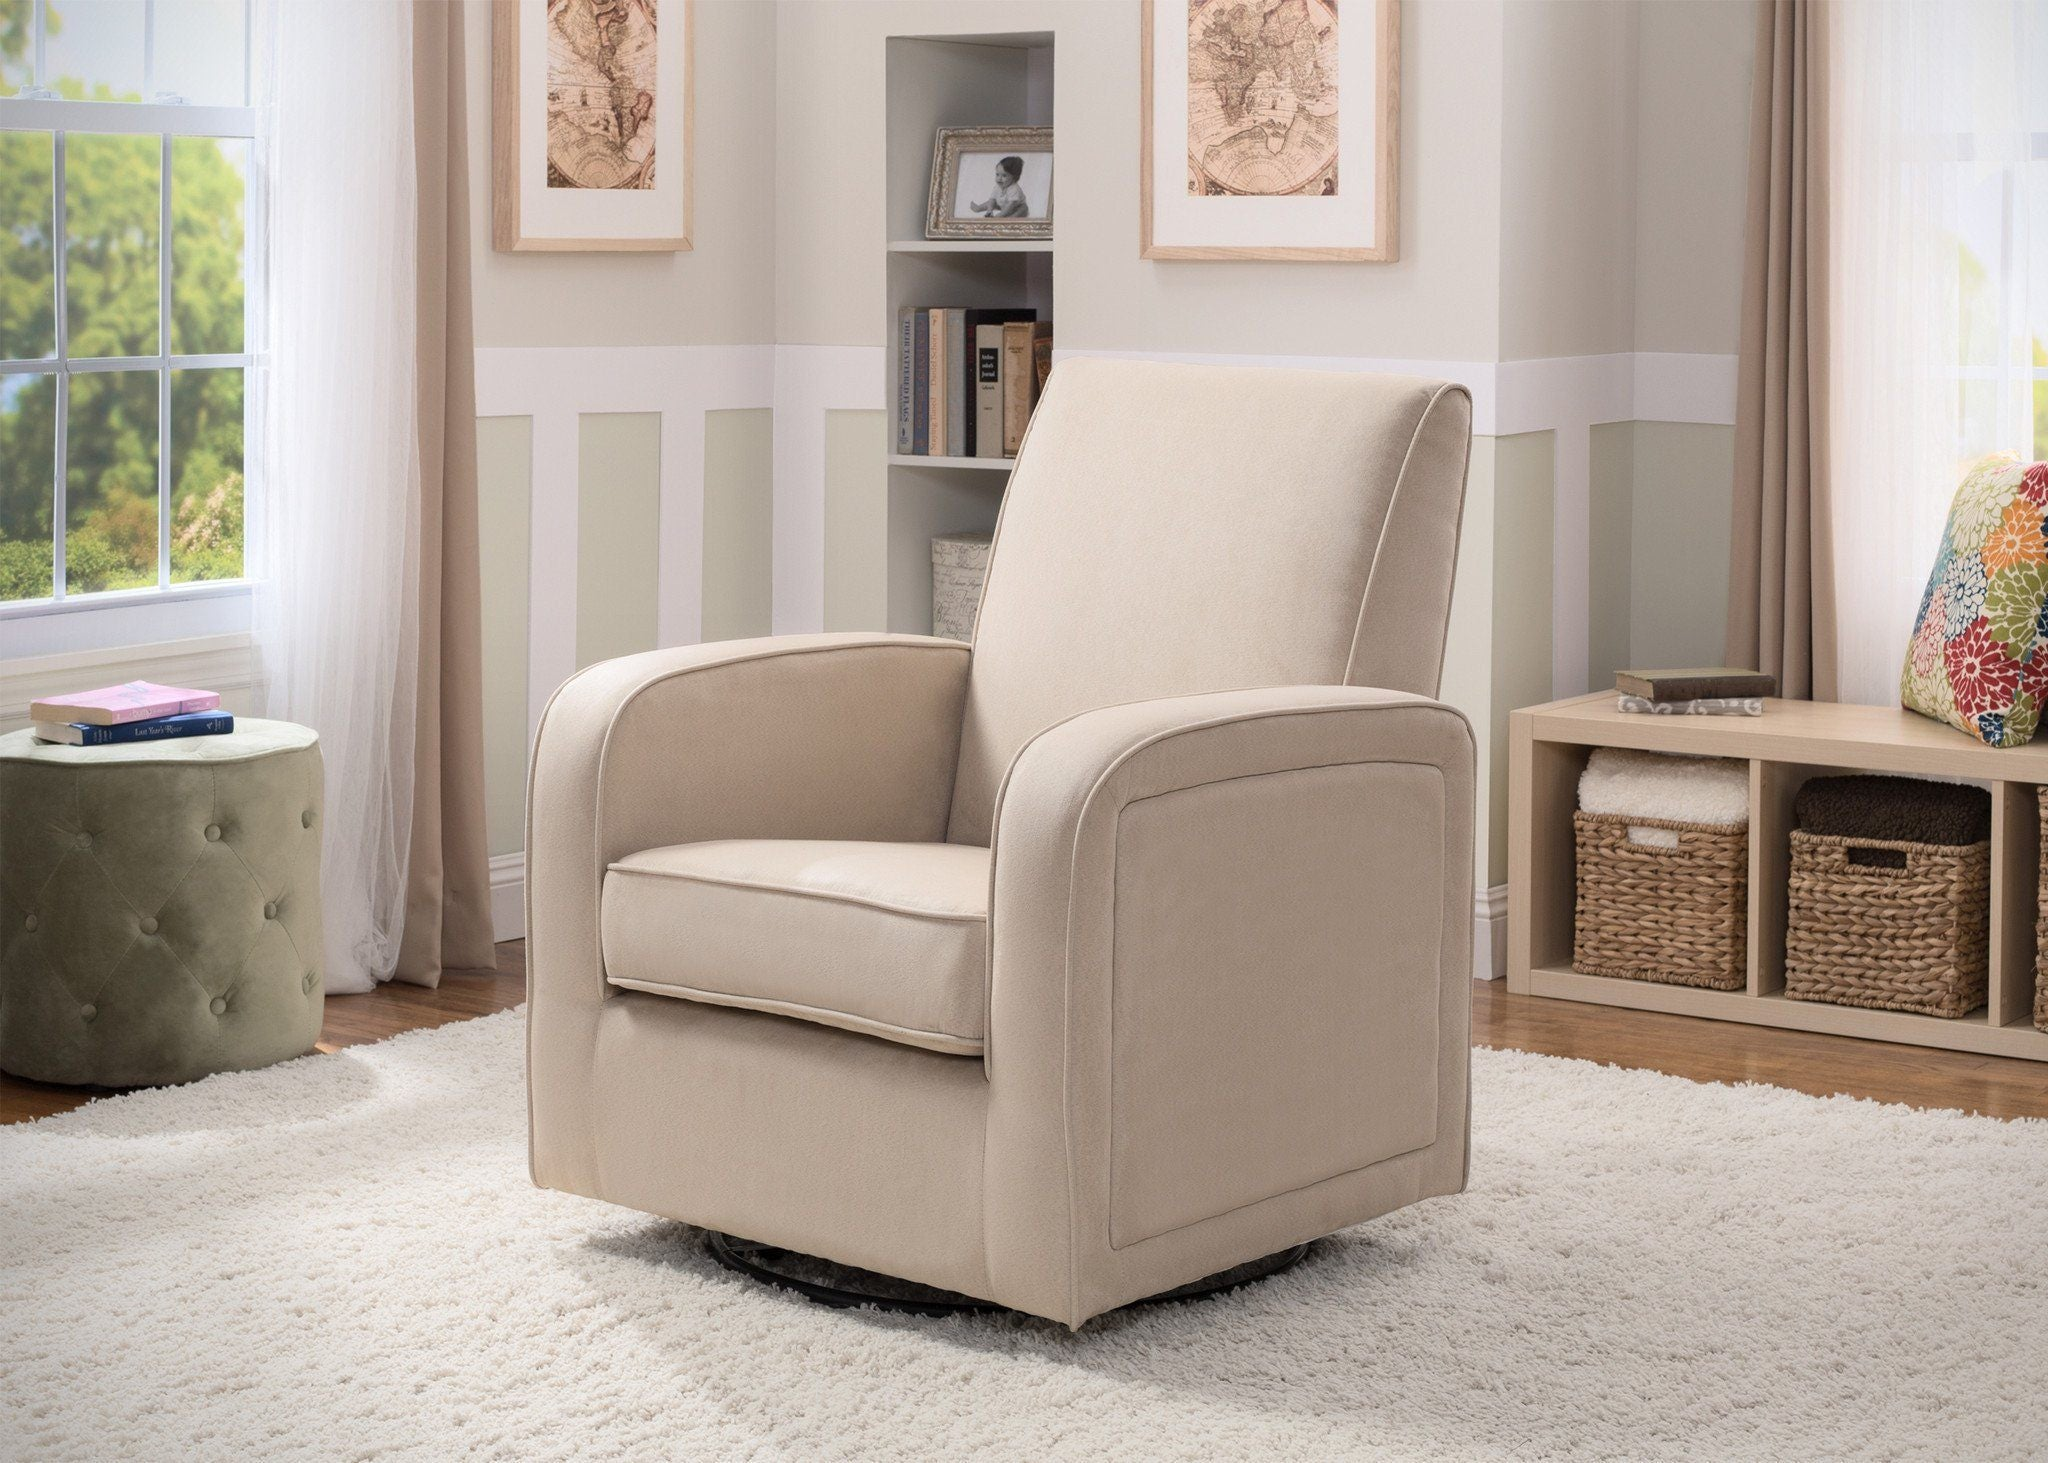 Delta Chilren Ecru (277) Clermont Upholstered Glider In Setting 2 A1a ...